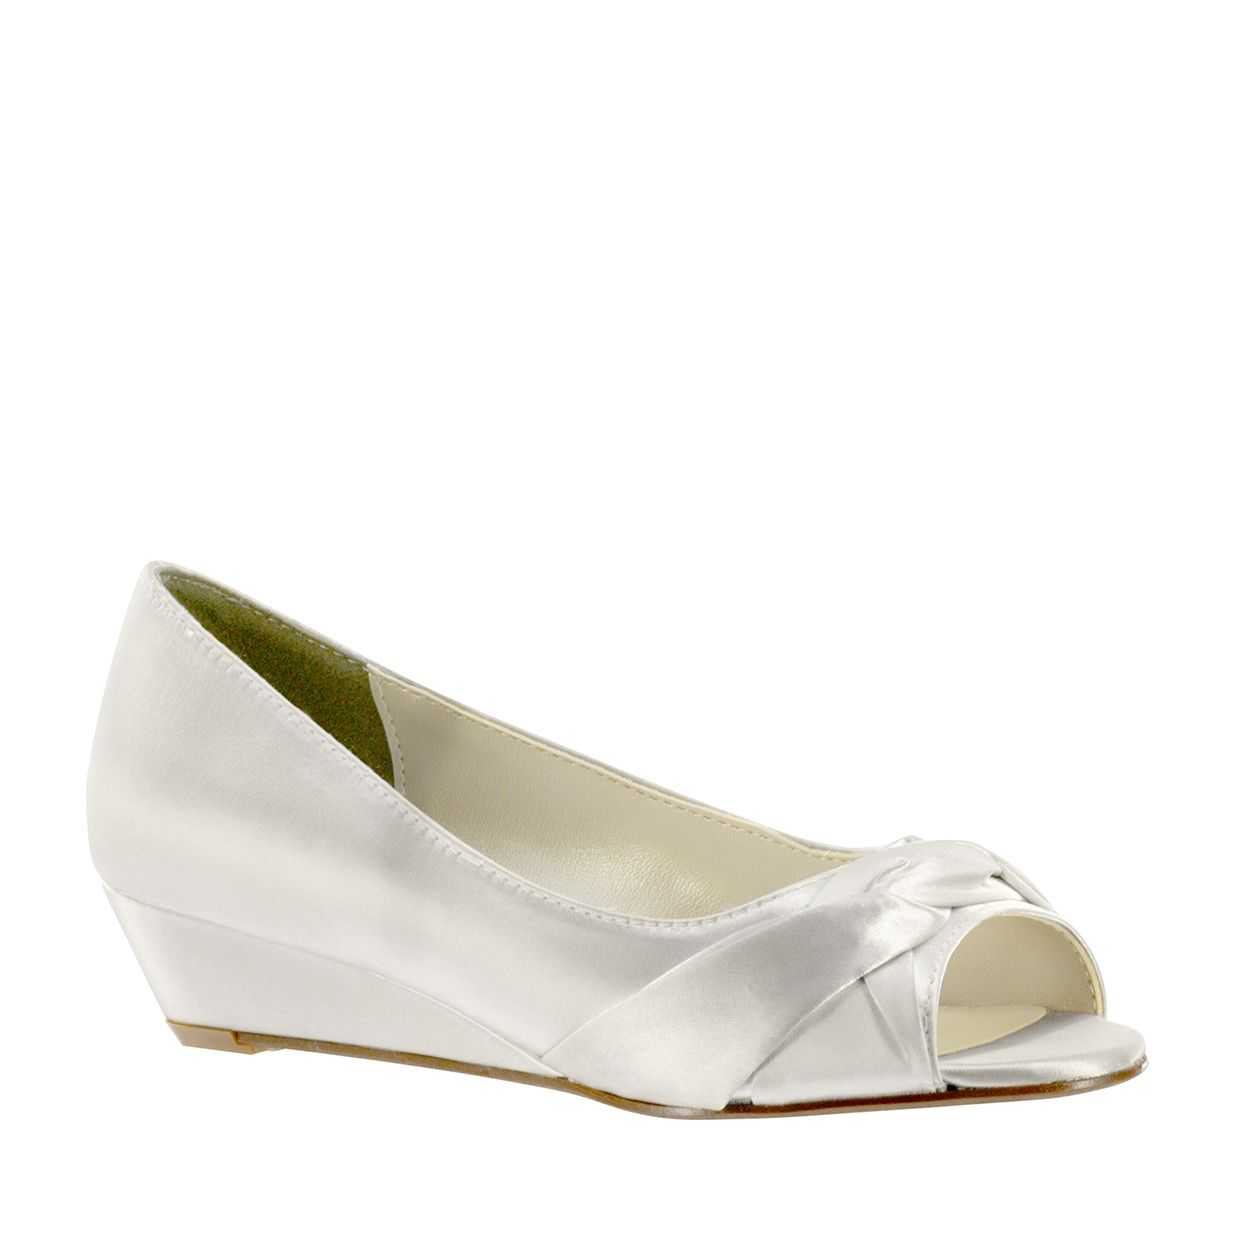 Delish By Touch Ups Bridal Shoes The Is A Dainty P Toe Wedding Wedge Perfect Style For Garden Or Any Uneven Sur